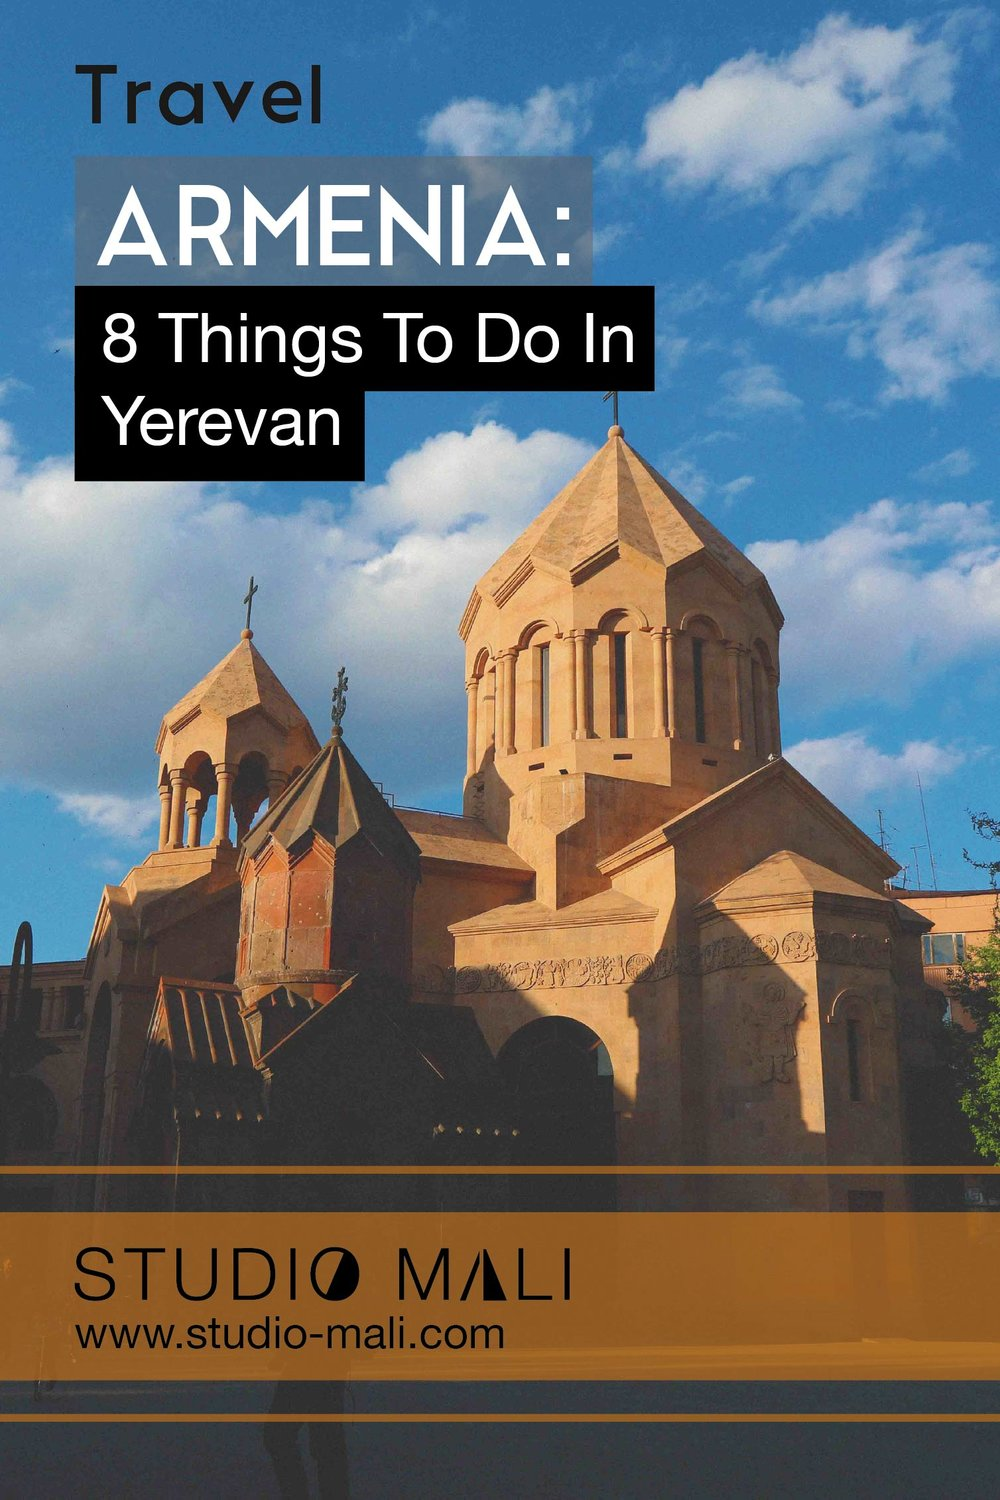 Armenia - 8 Things To Do In Yerevan, by Studio Mali